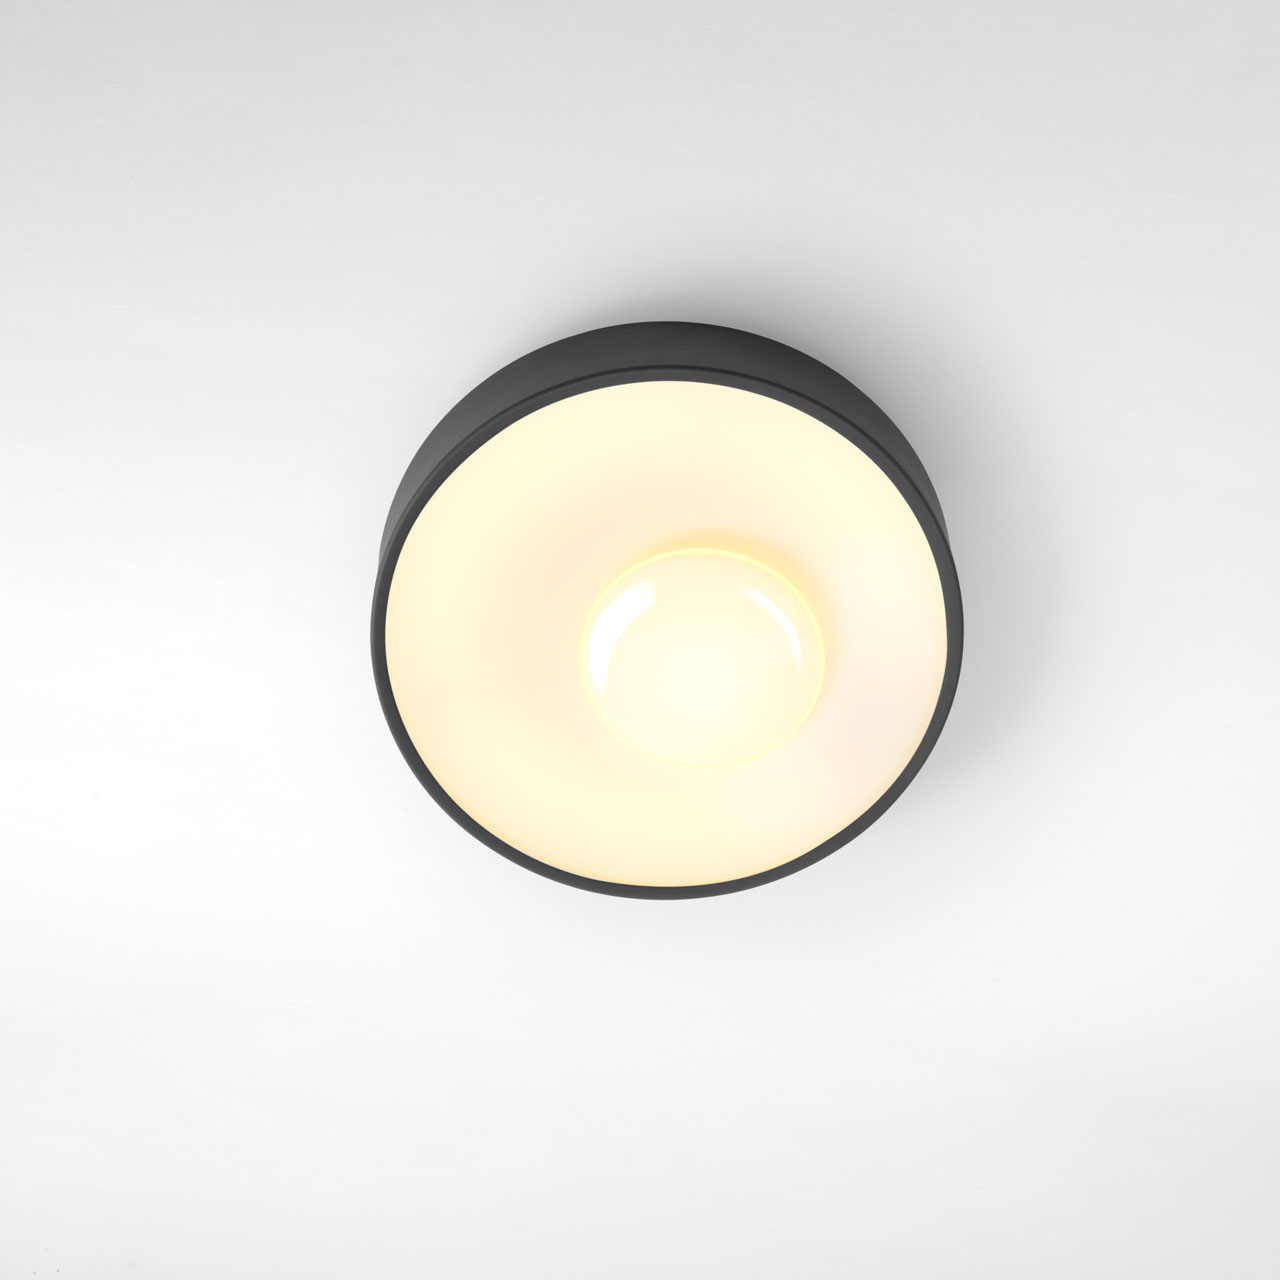 Sun Plafón 60 LED 33.6W Grafito (Dimmable)